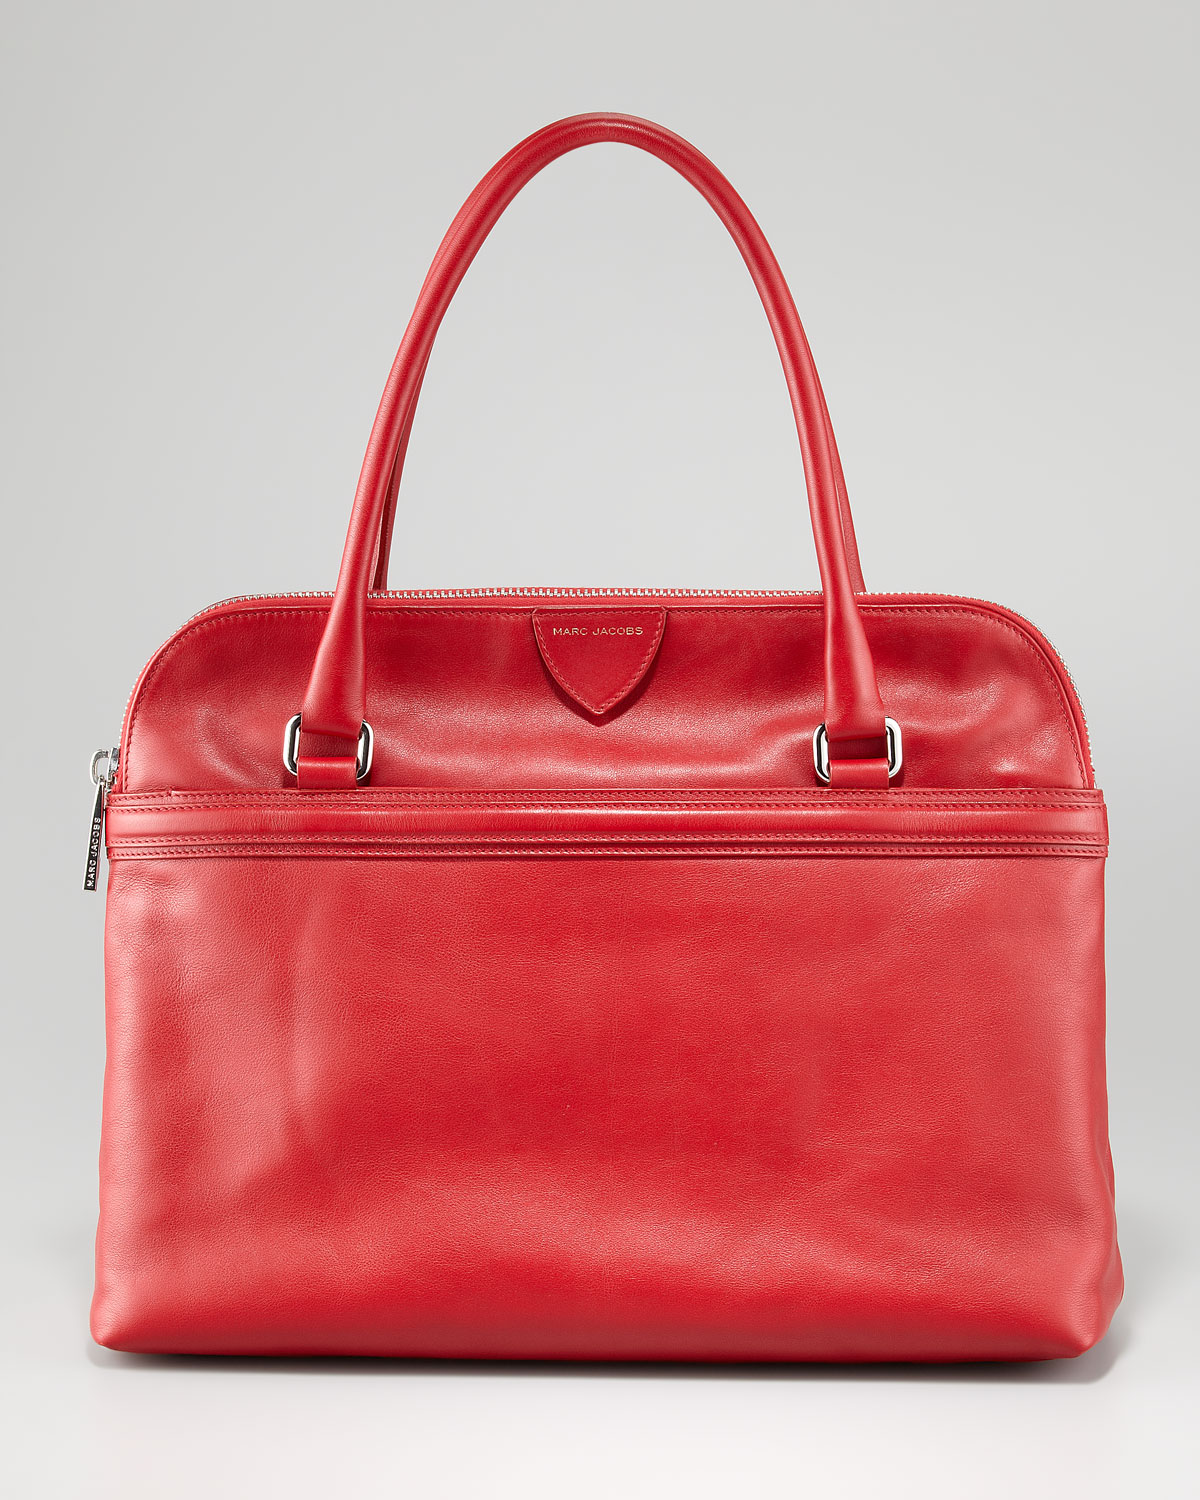 6b45eb6e226c Lyst - Marc Jacobs Raleigh Leather Tote Bag Red in Red